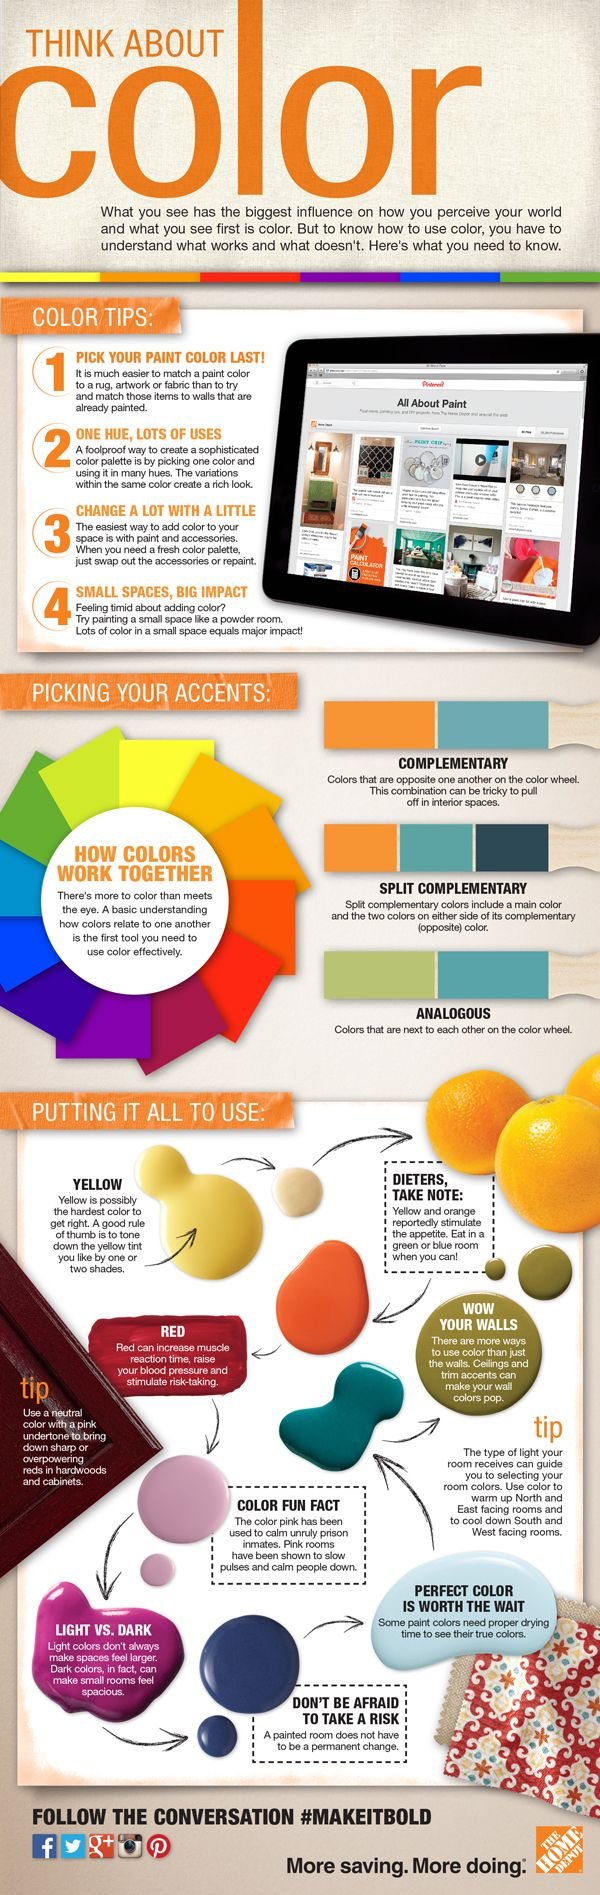 Color wheel online free - Tips On Color Theory And Using The Color Wheel Home Improvement Blog